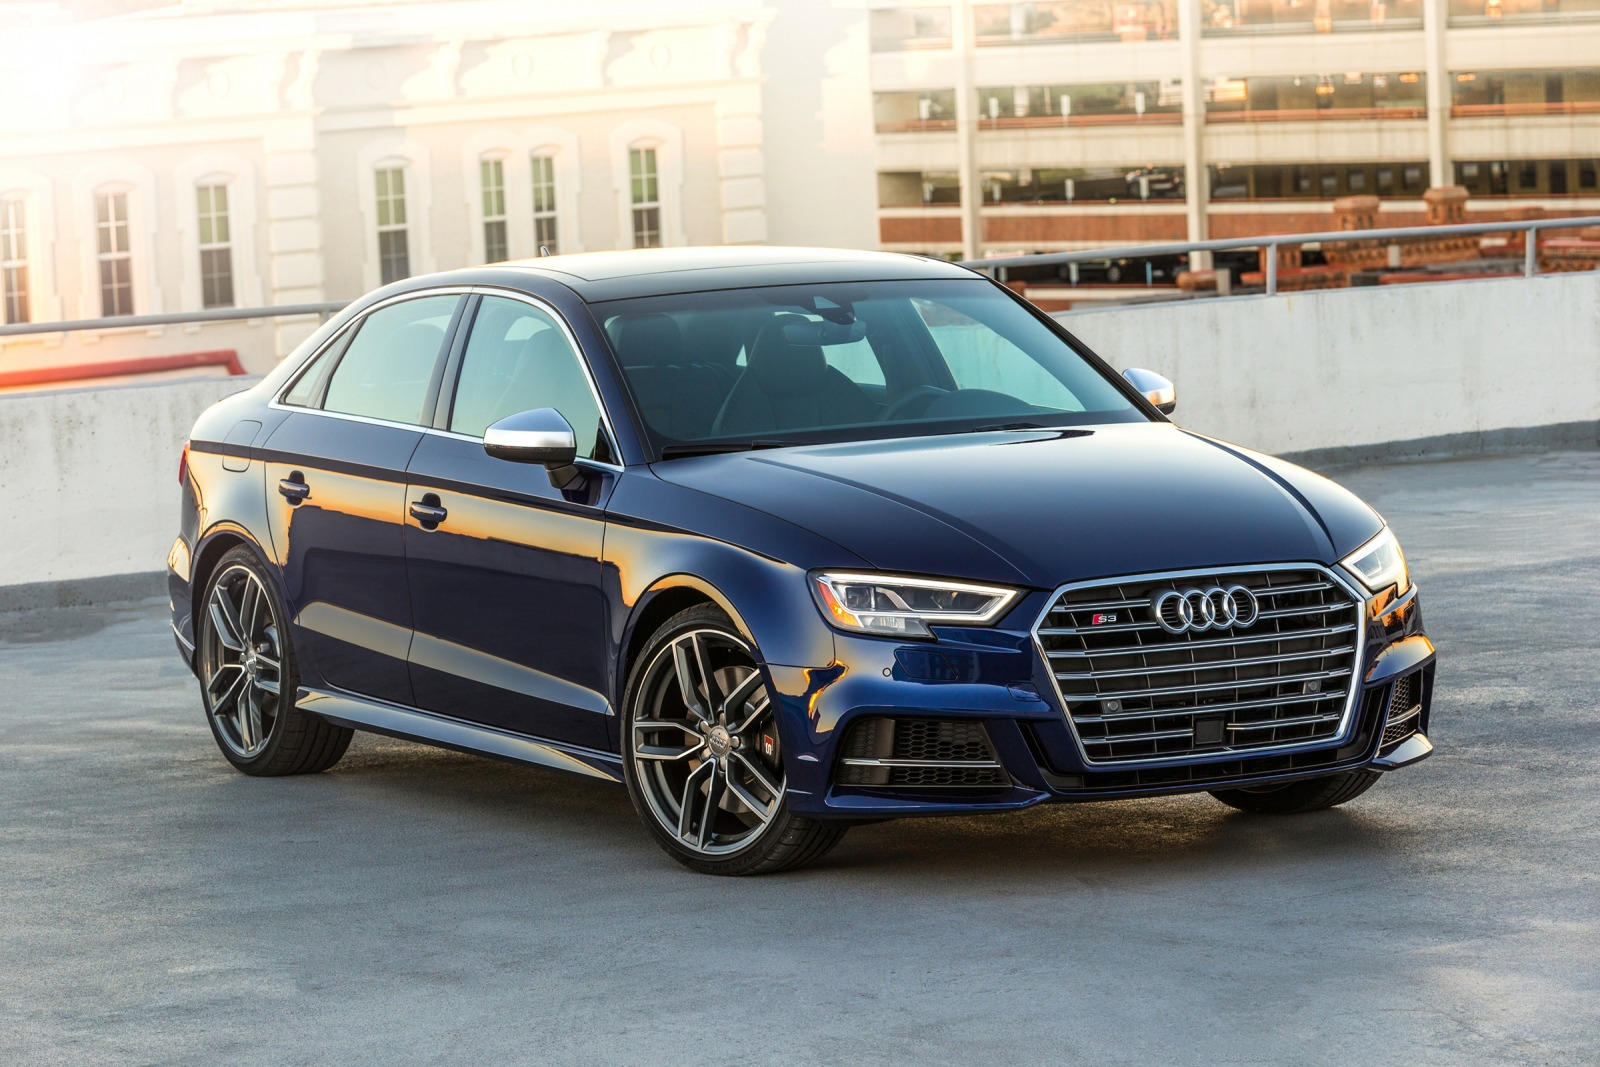 2020 Audi S3 Sedan Review Trims Specs Price New Interior Features Exterior Design And Specifications Carbuzz